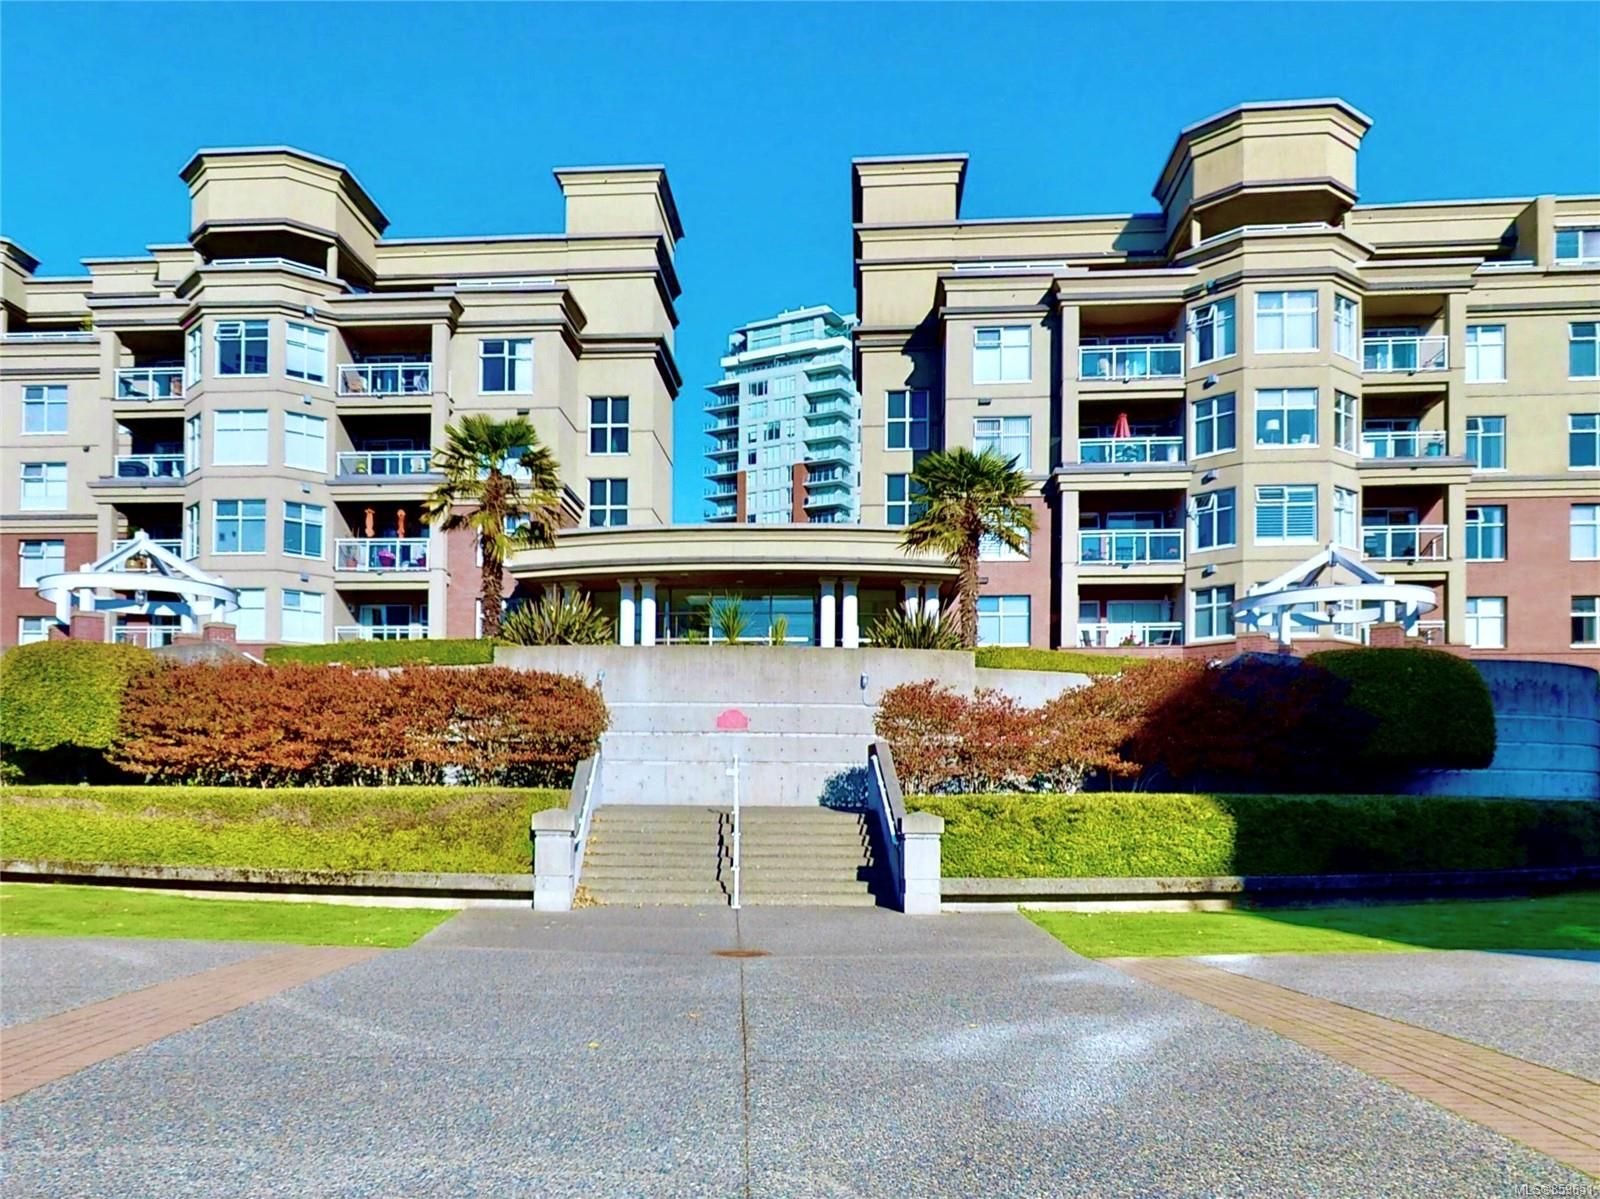 Main Photo: 213 165 Kimta Rd in : VW Songhees Condo for sale (Victoria West)  : MLS®# 859651